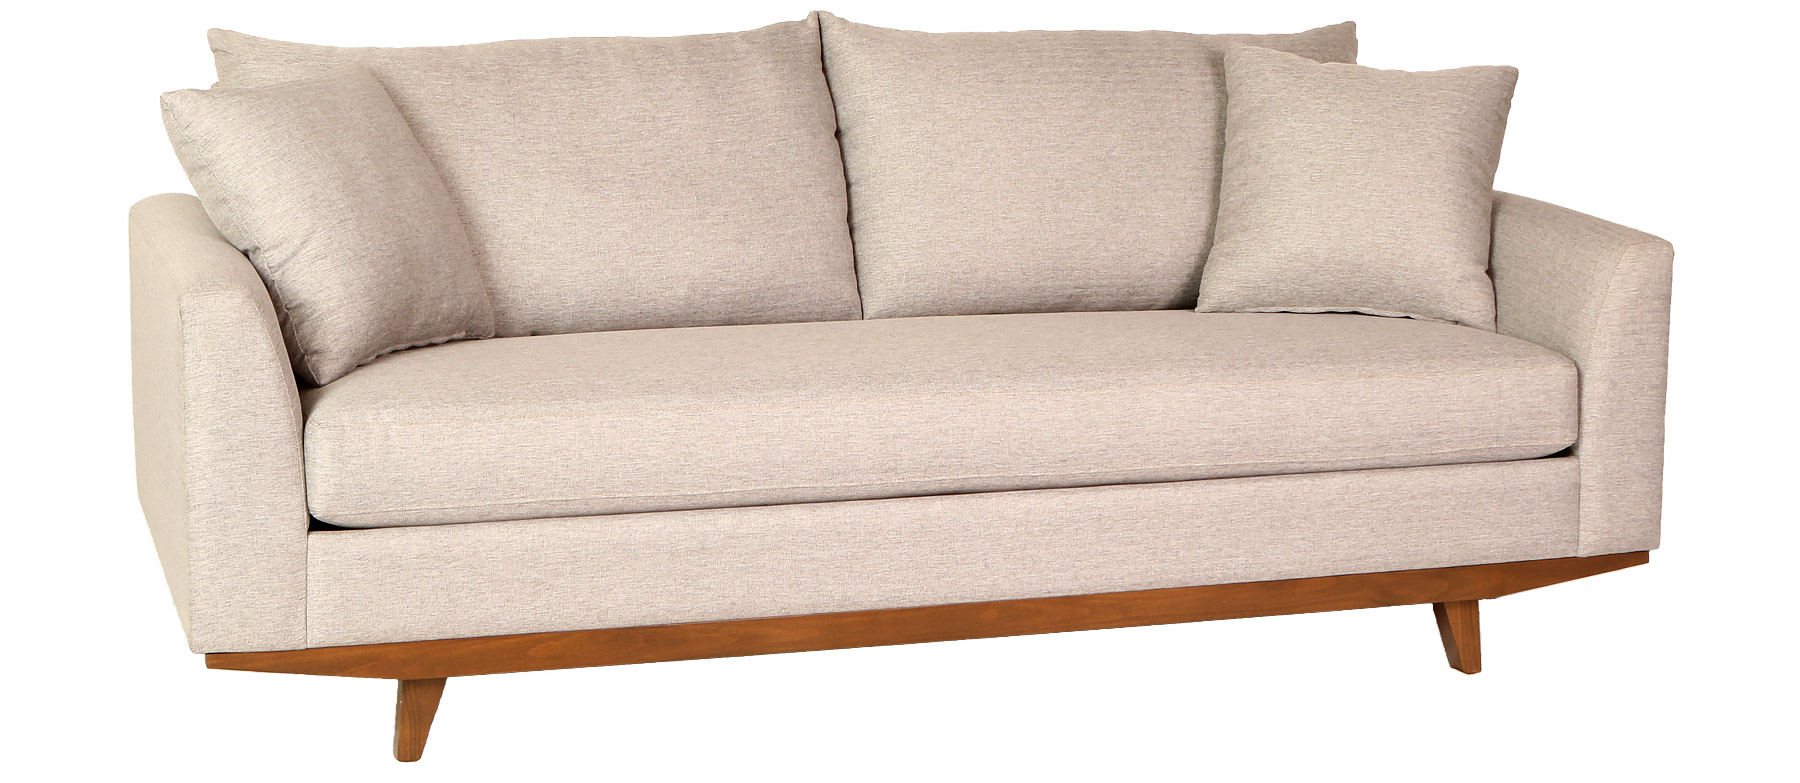 The Gino Sofa